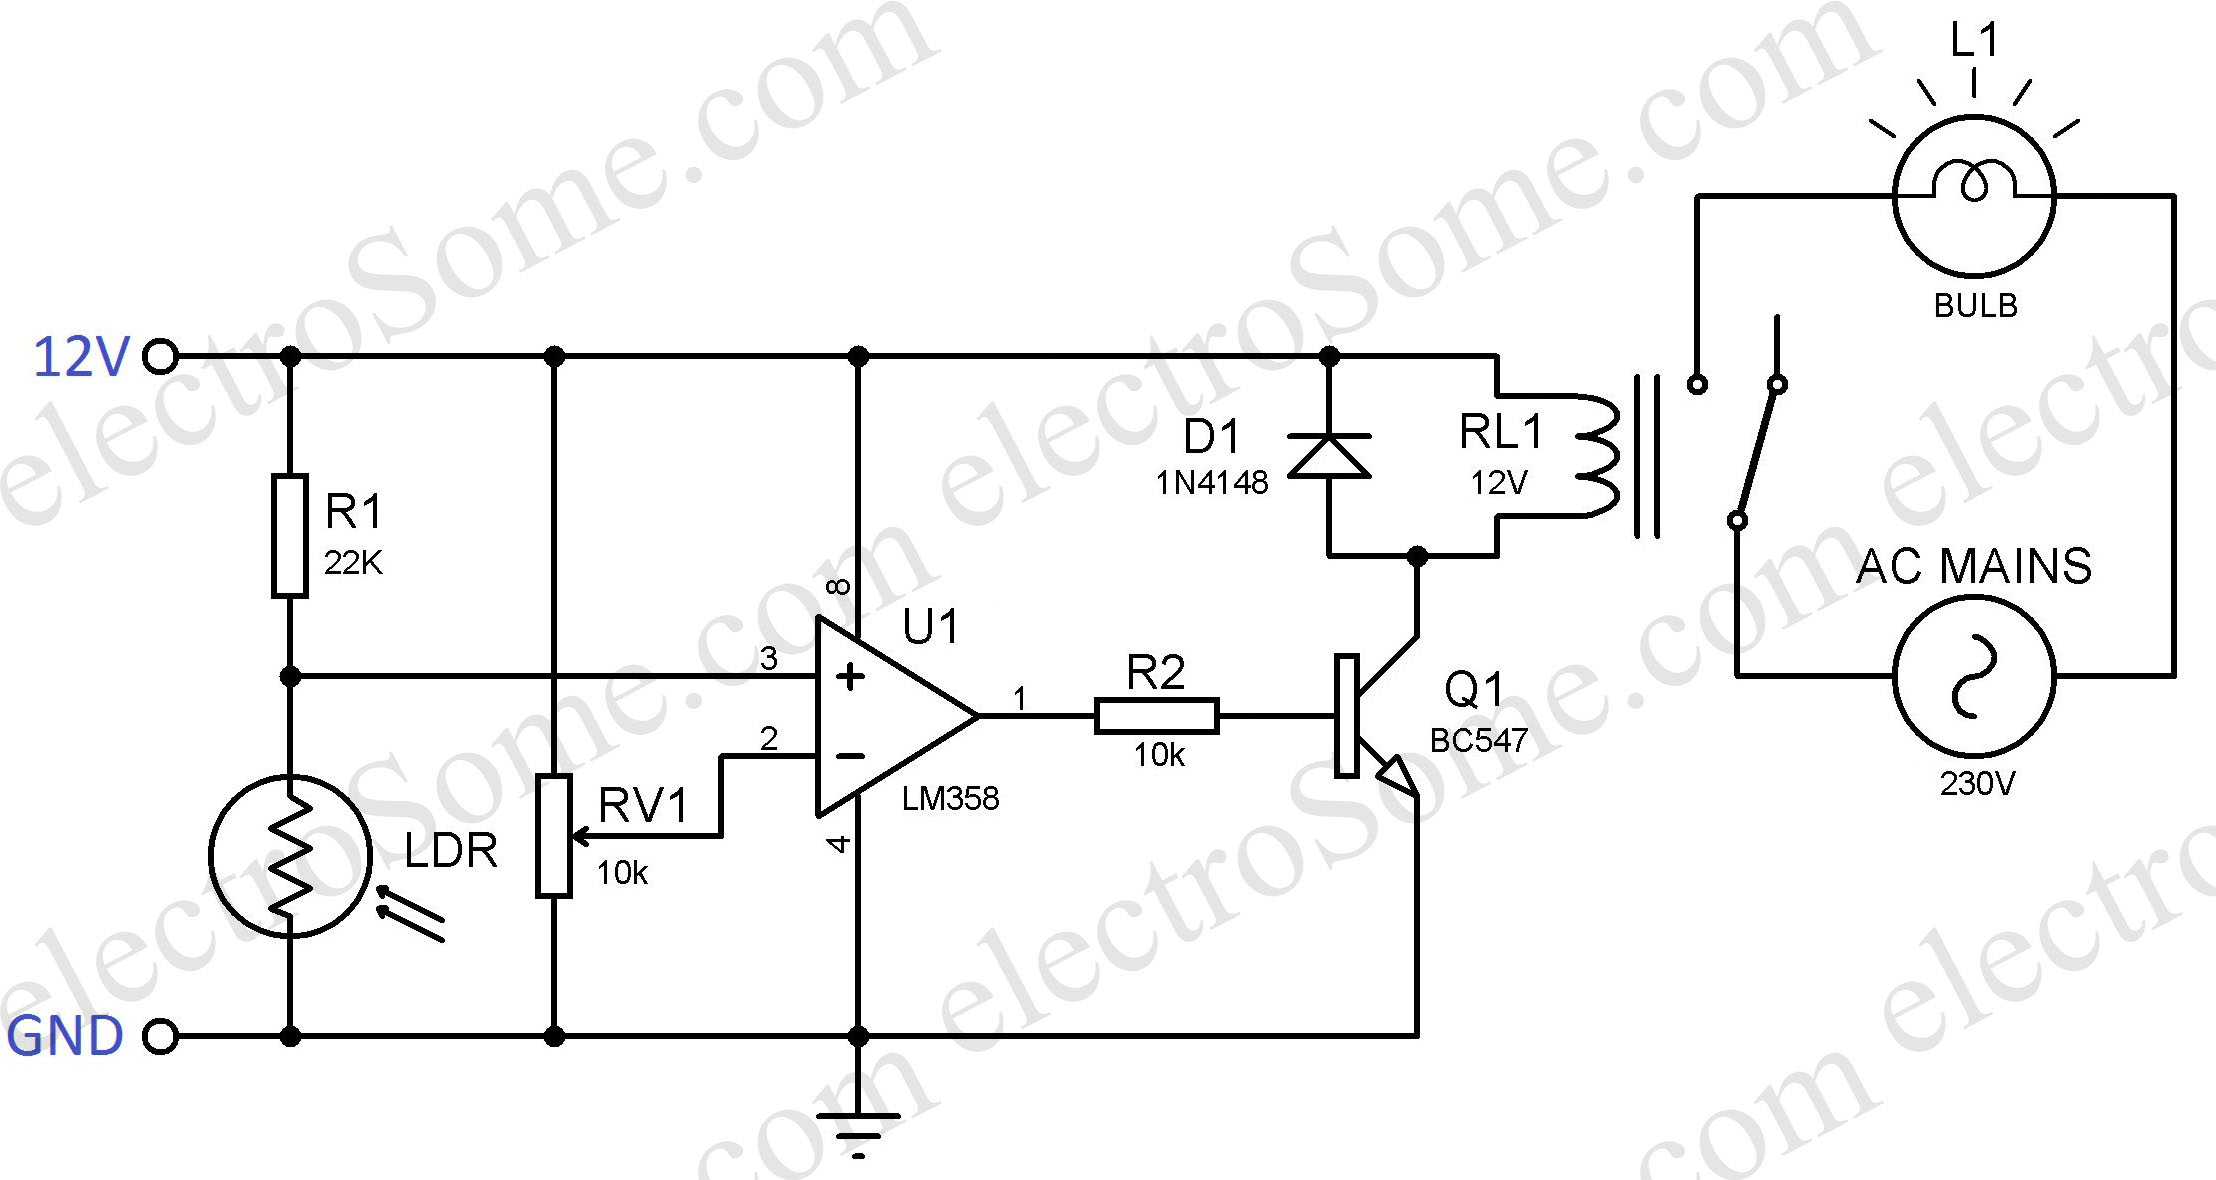 Wiring A Night Light Diagram Online Install Switch Lamp For 220v Library Automatic Circuit